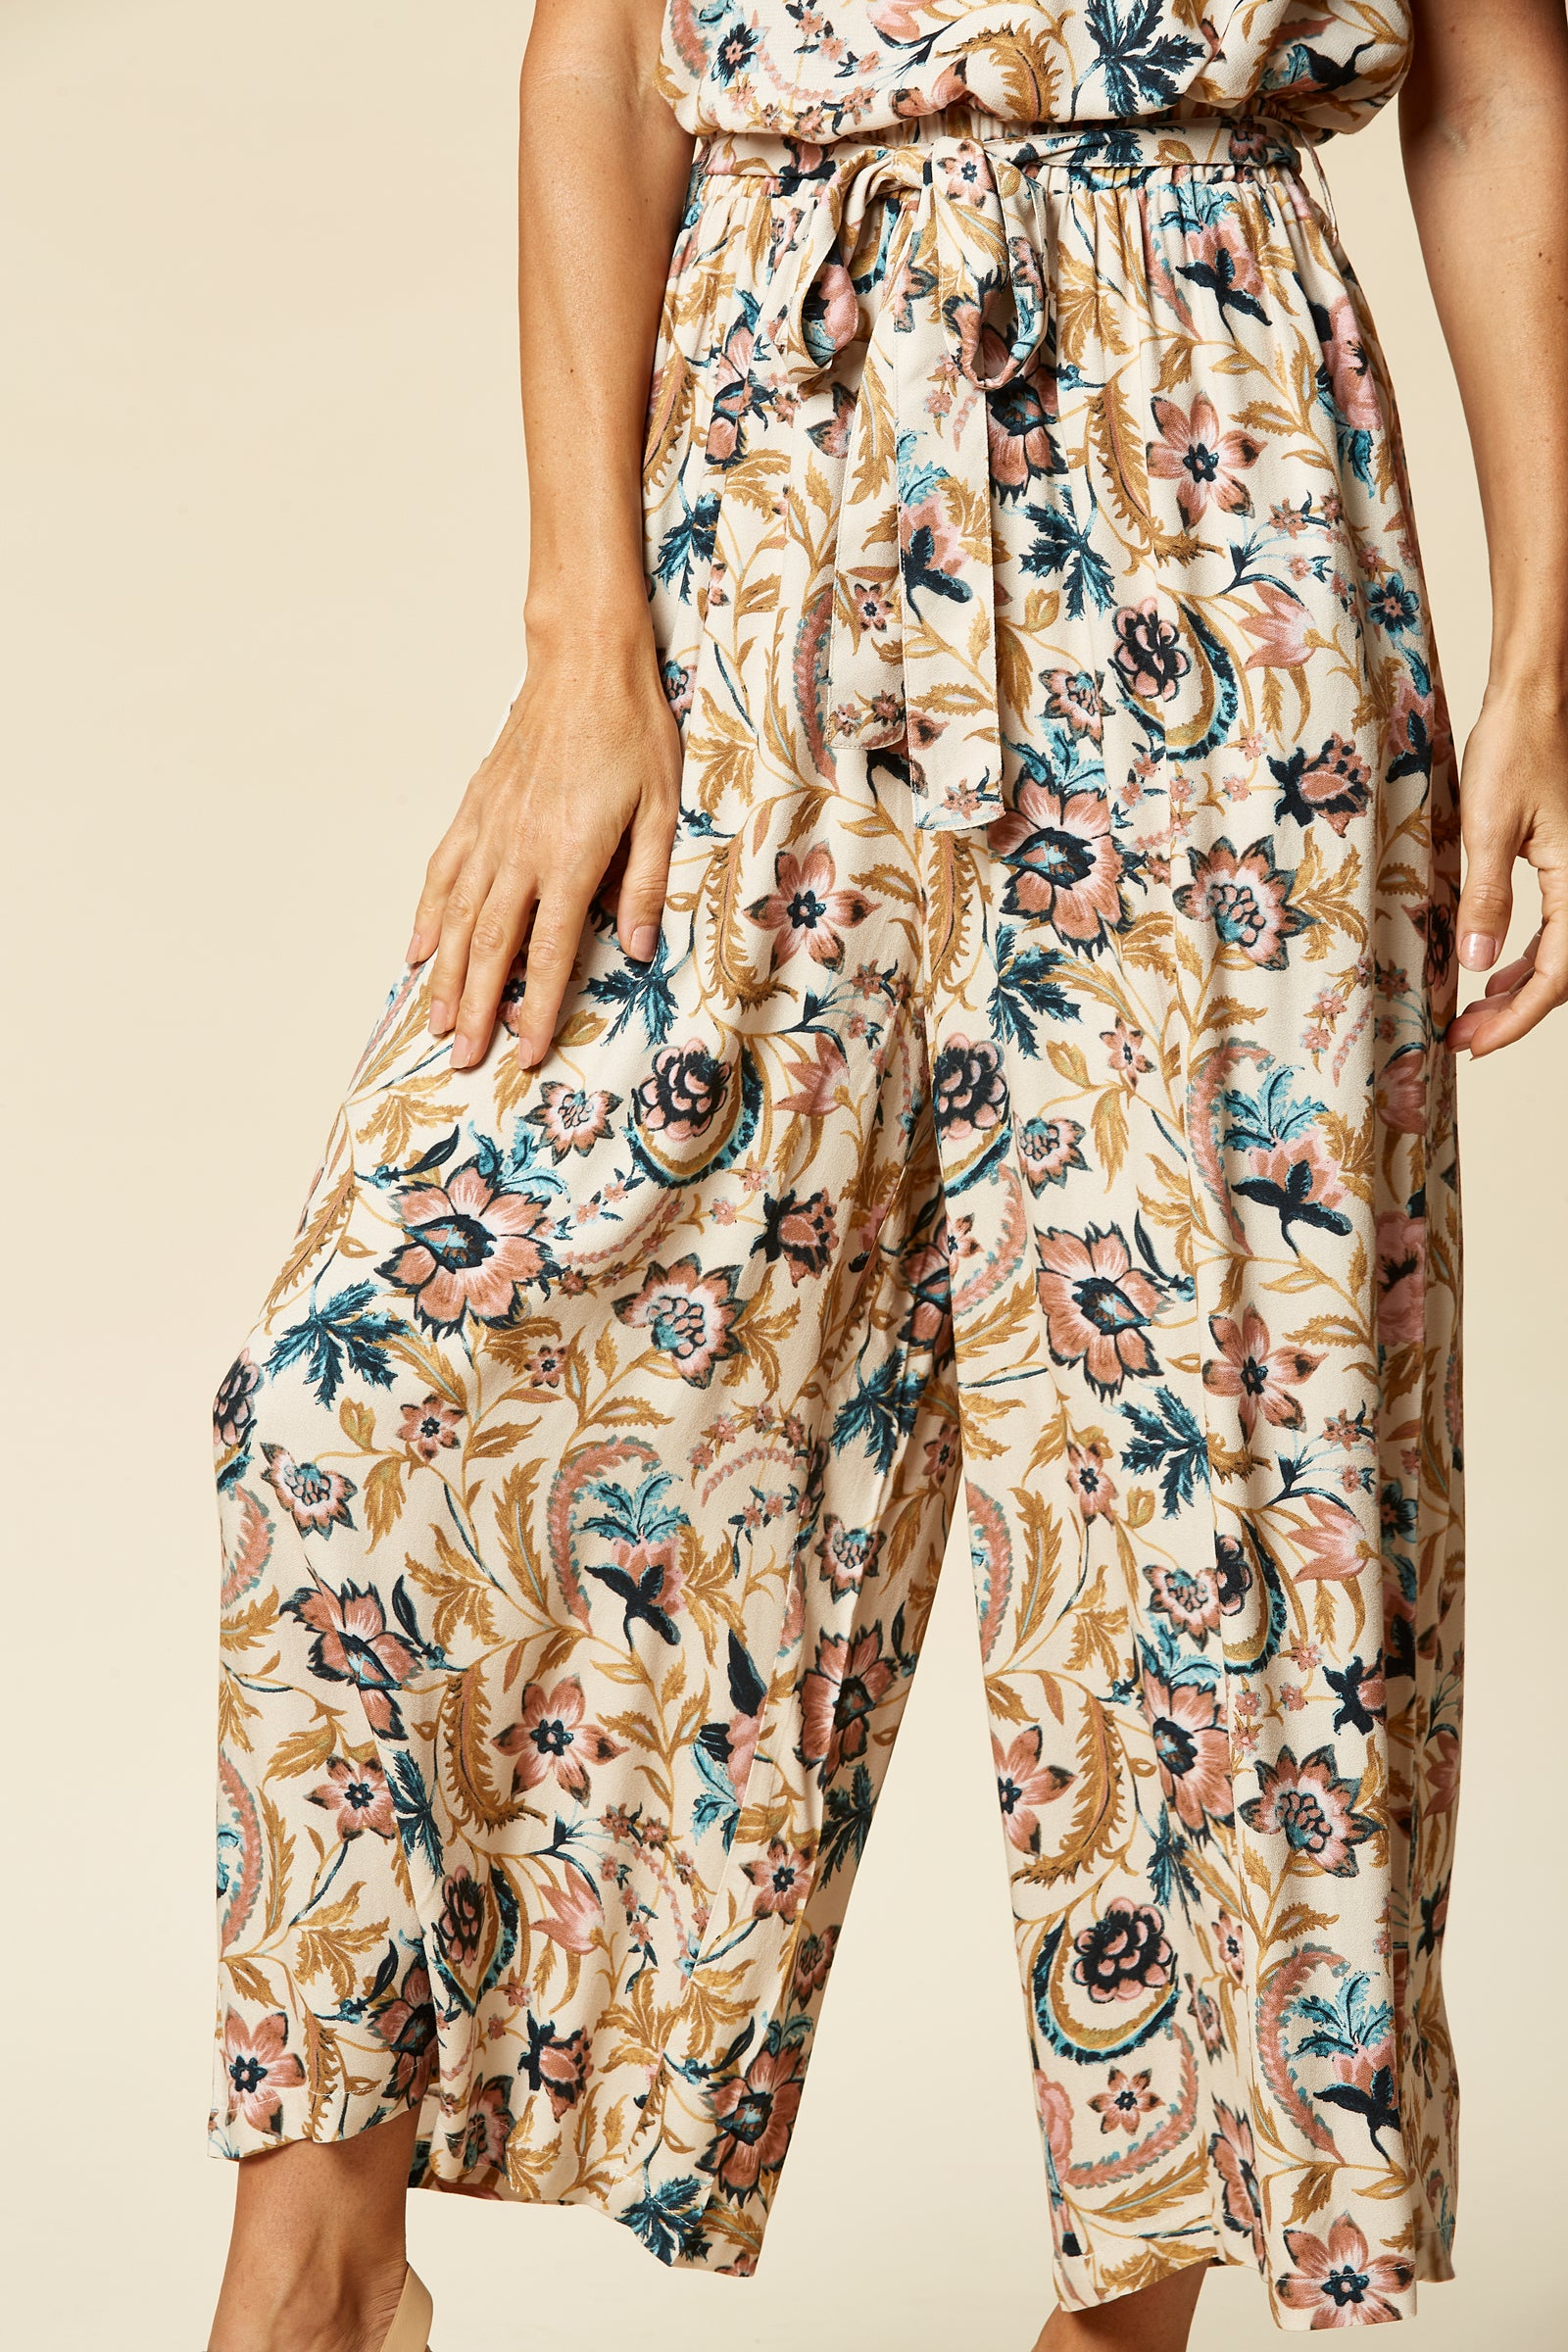 Zena Pant - Buff Botanical - eb&ive Clothing - Pant Relaxed